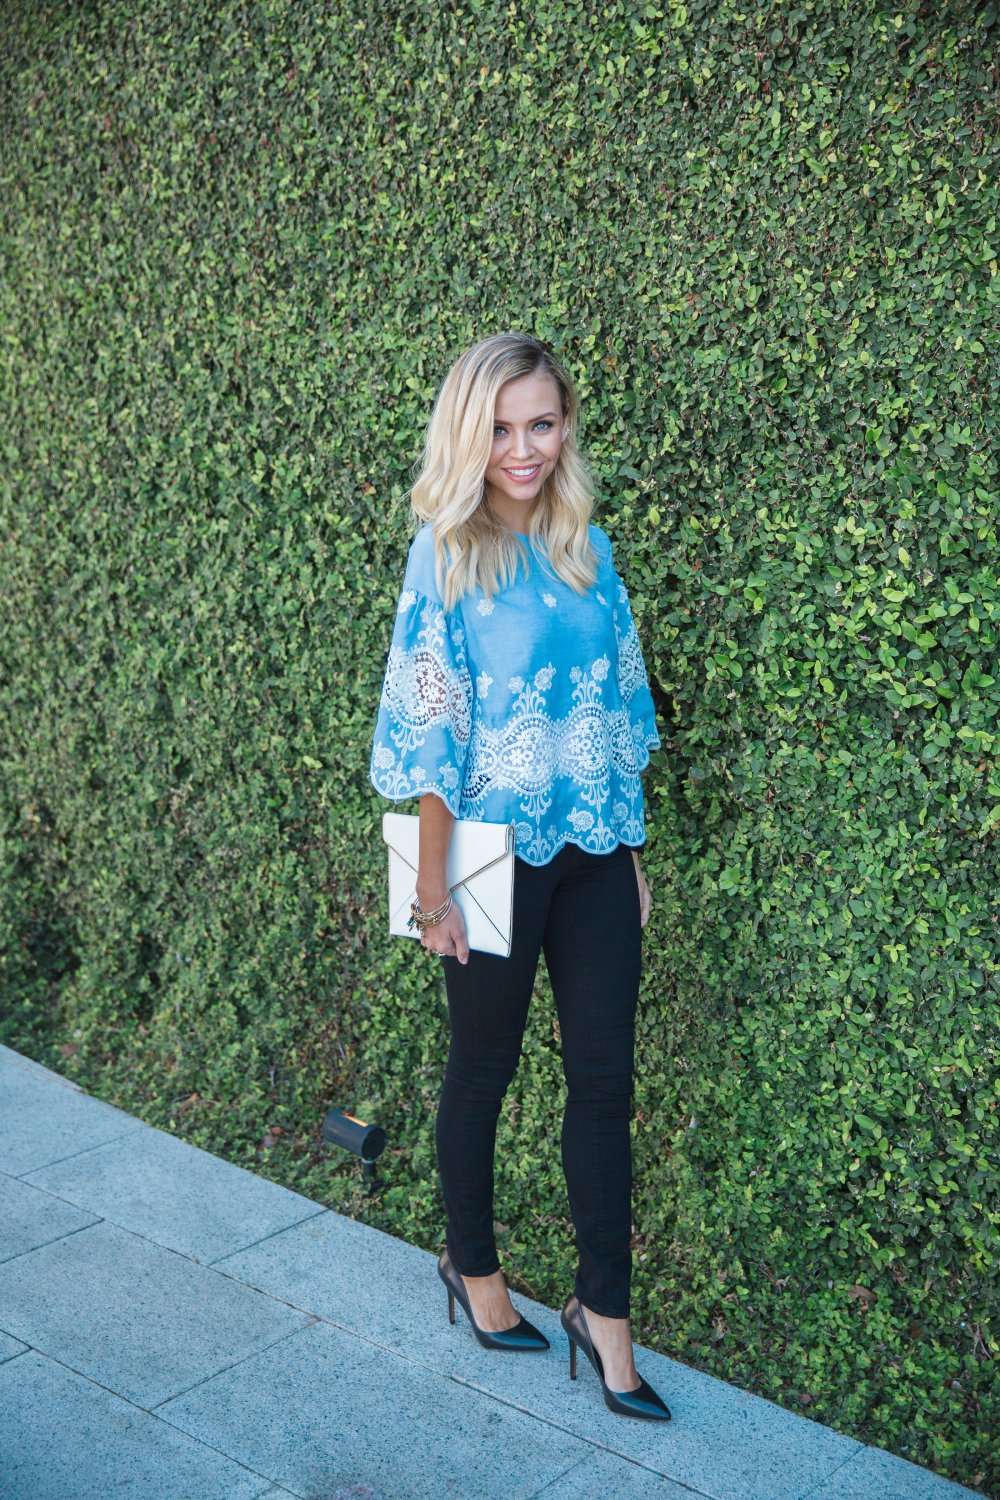 Destiny_Thompson_Fashion_Blogger